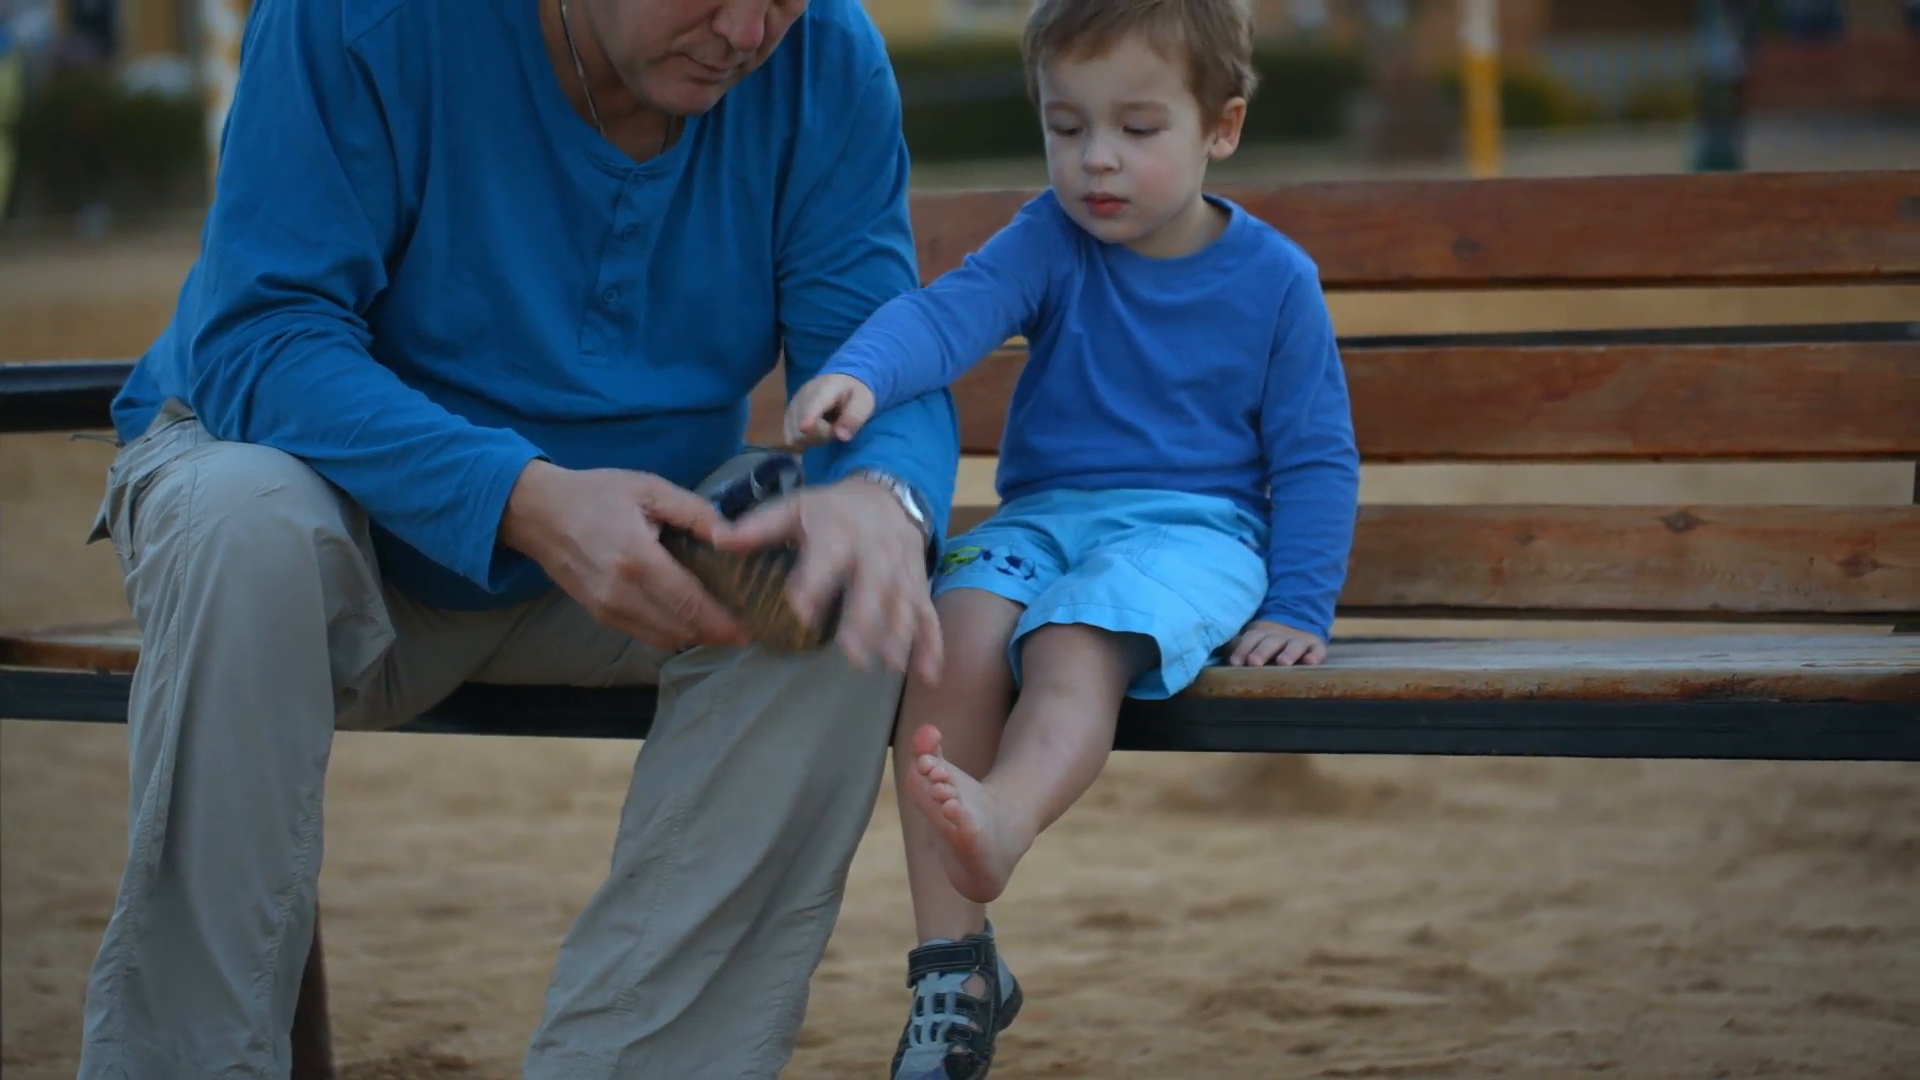 Dolly shot of a boy and his grandpa on the wooden bench. Grandfather ...